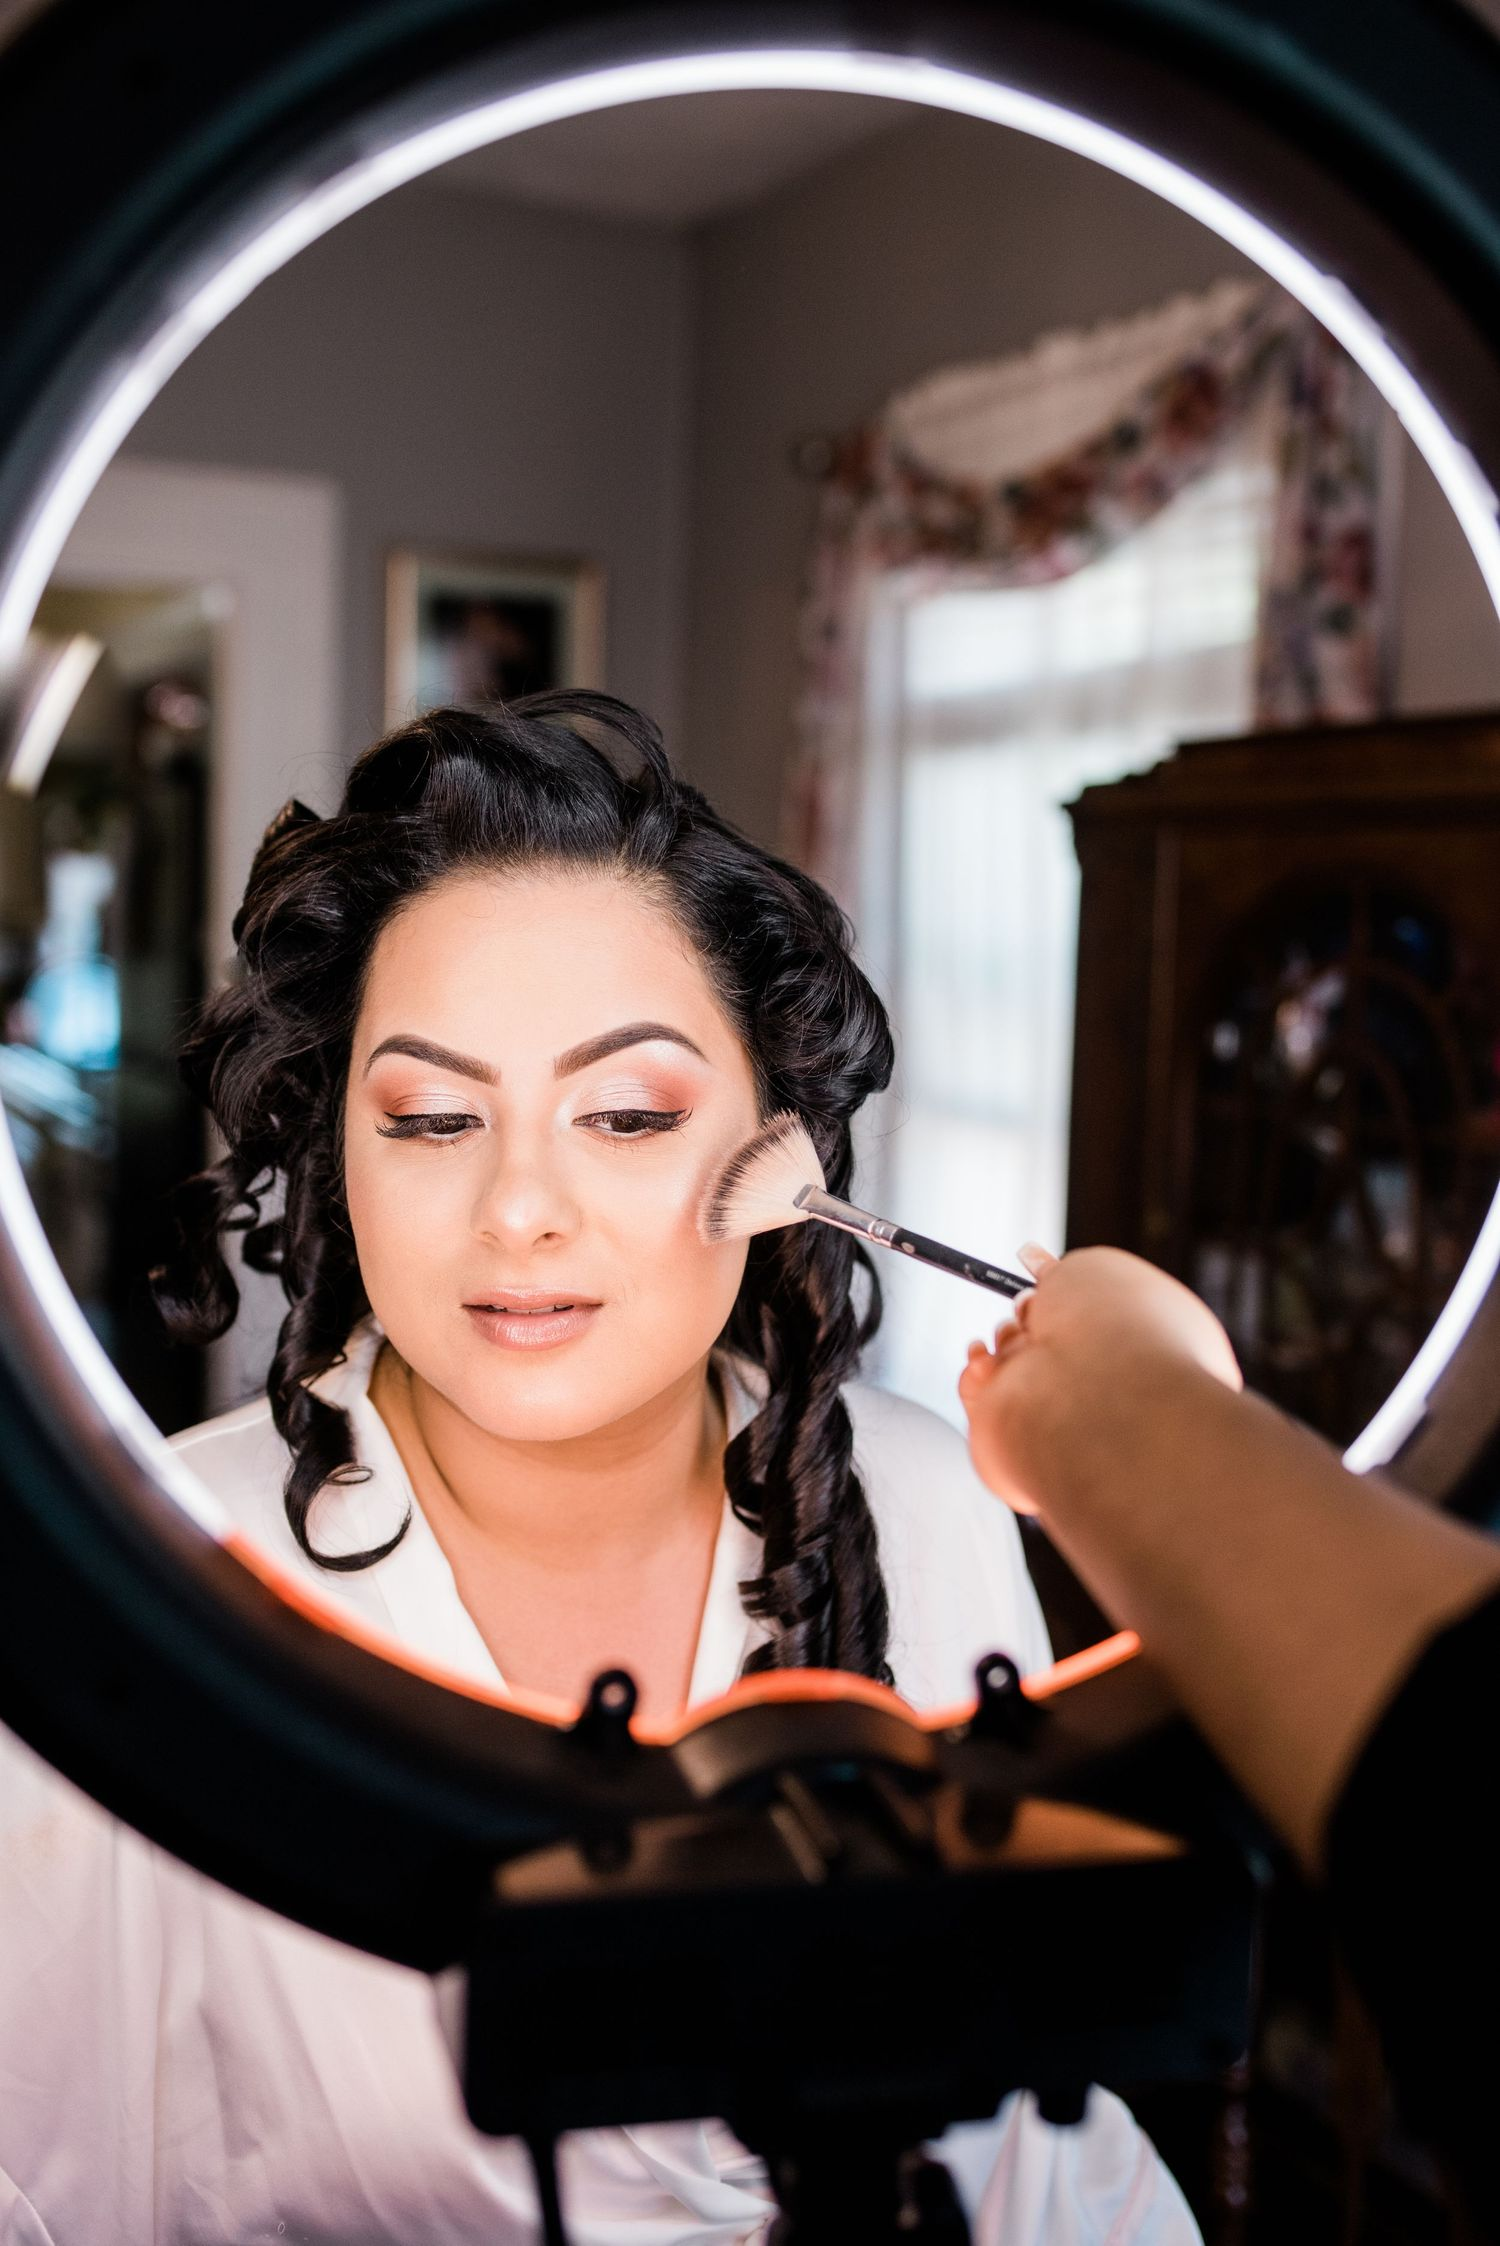 bride getting ready in front of a ring light